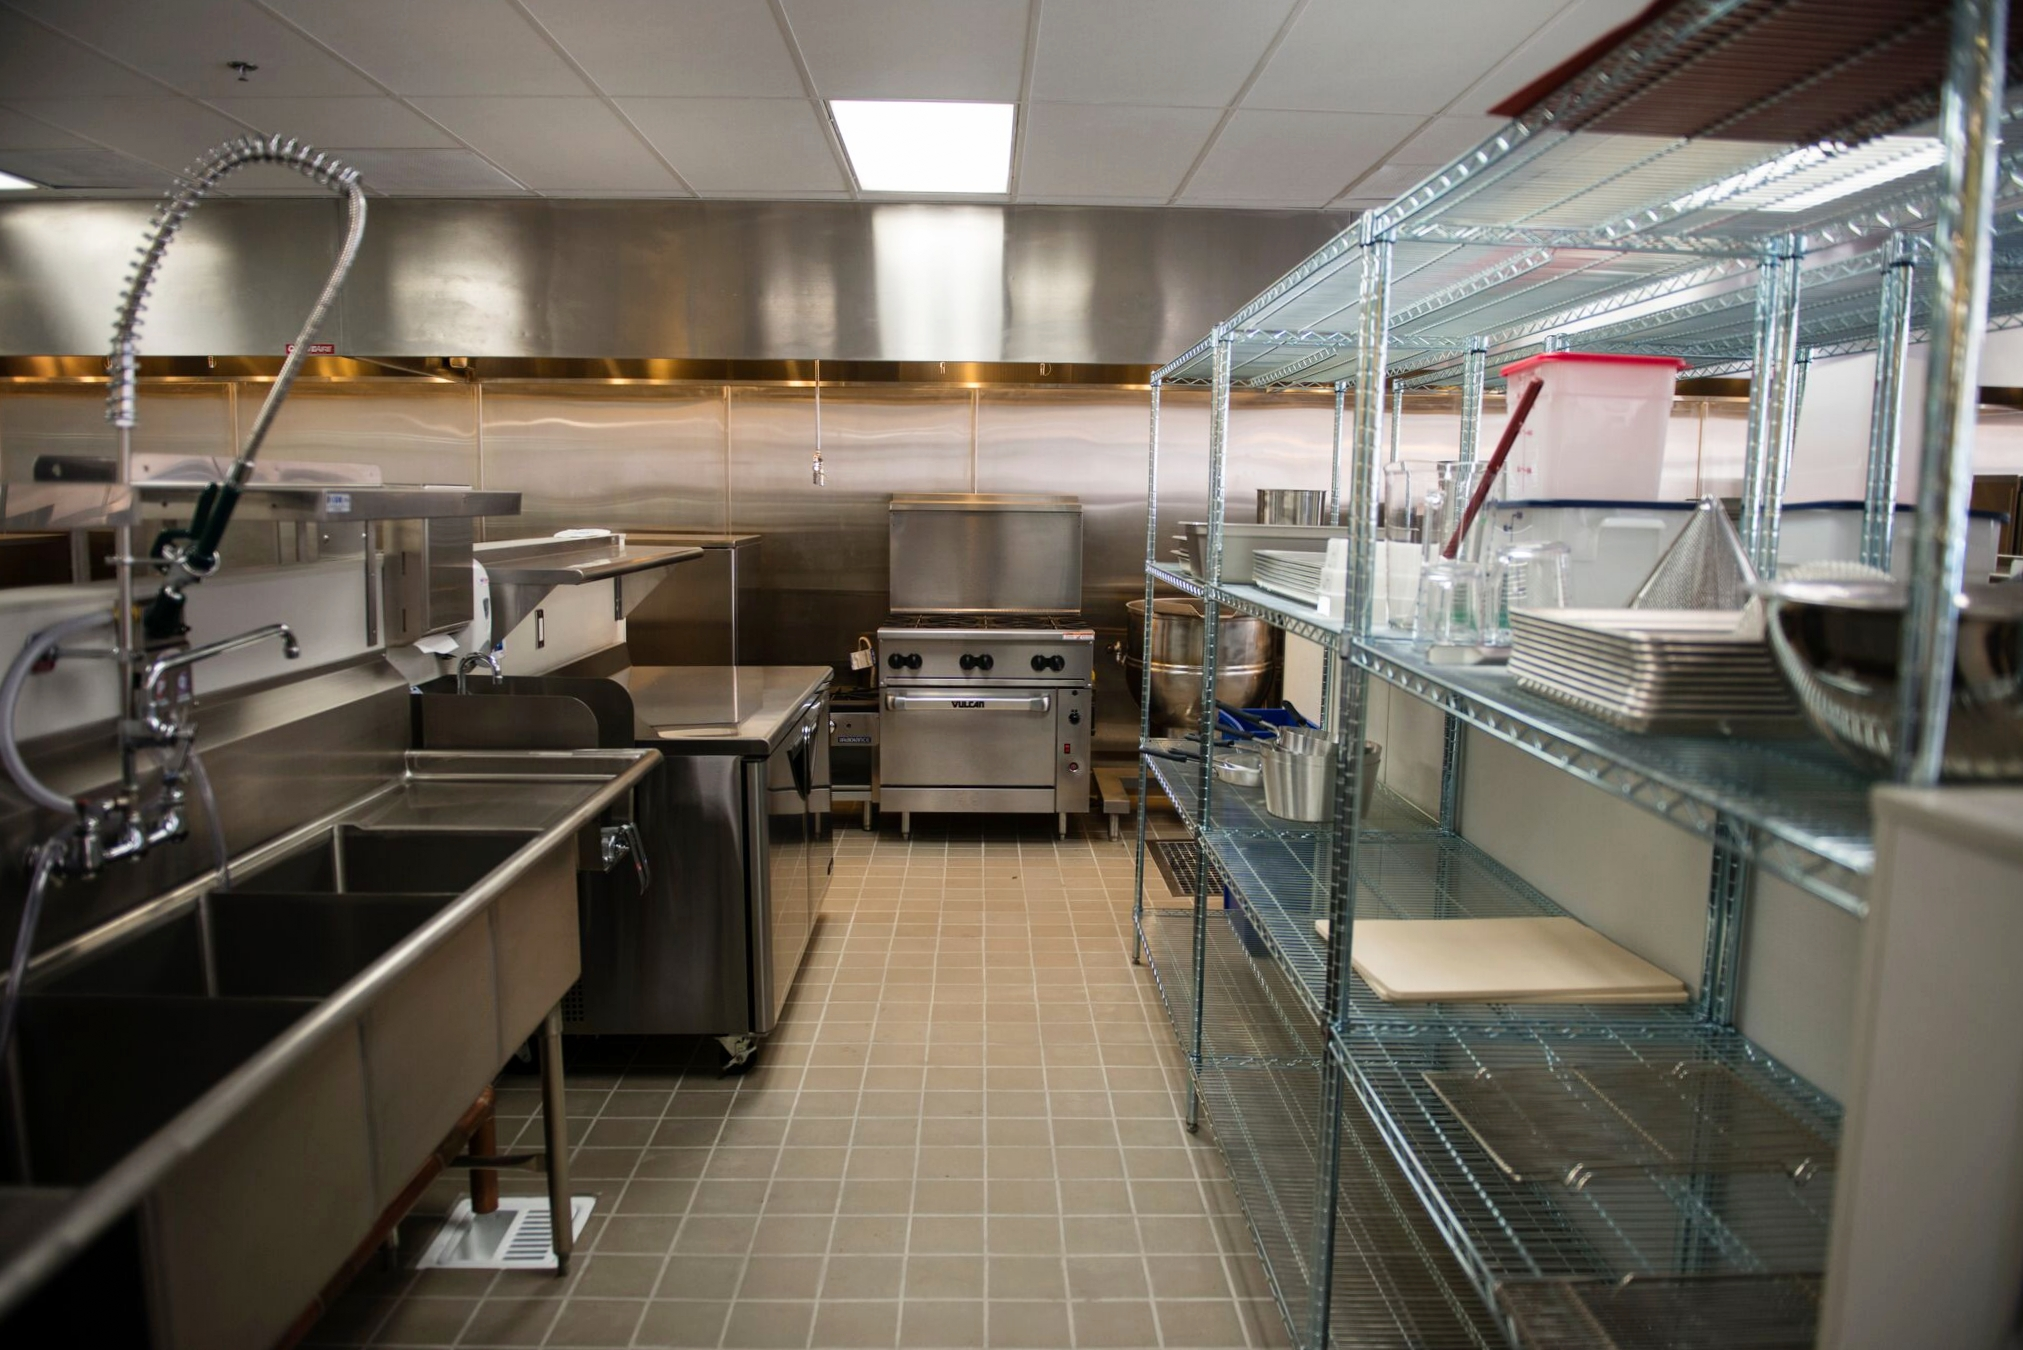 Vacant East End Incubator Kitchens space | photo courtesy of 100eats